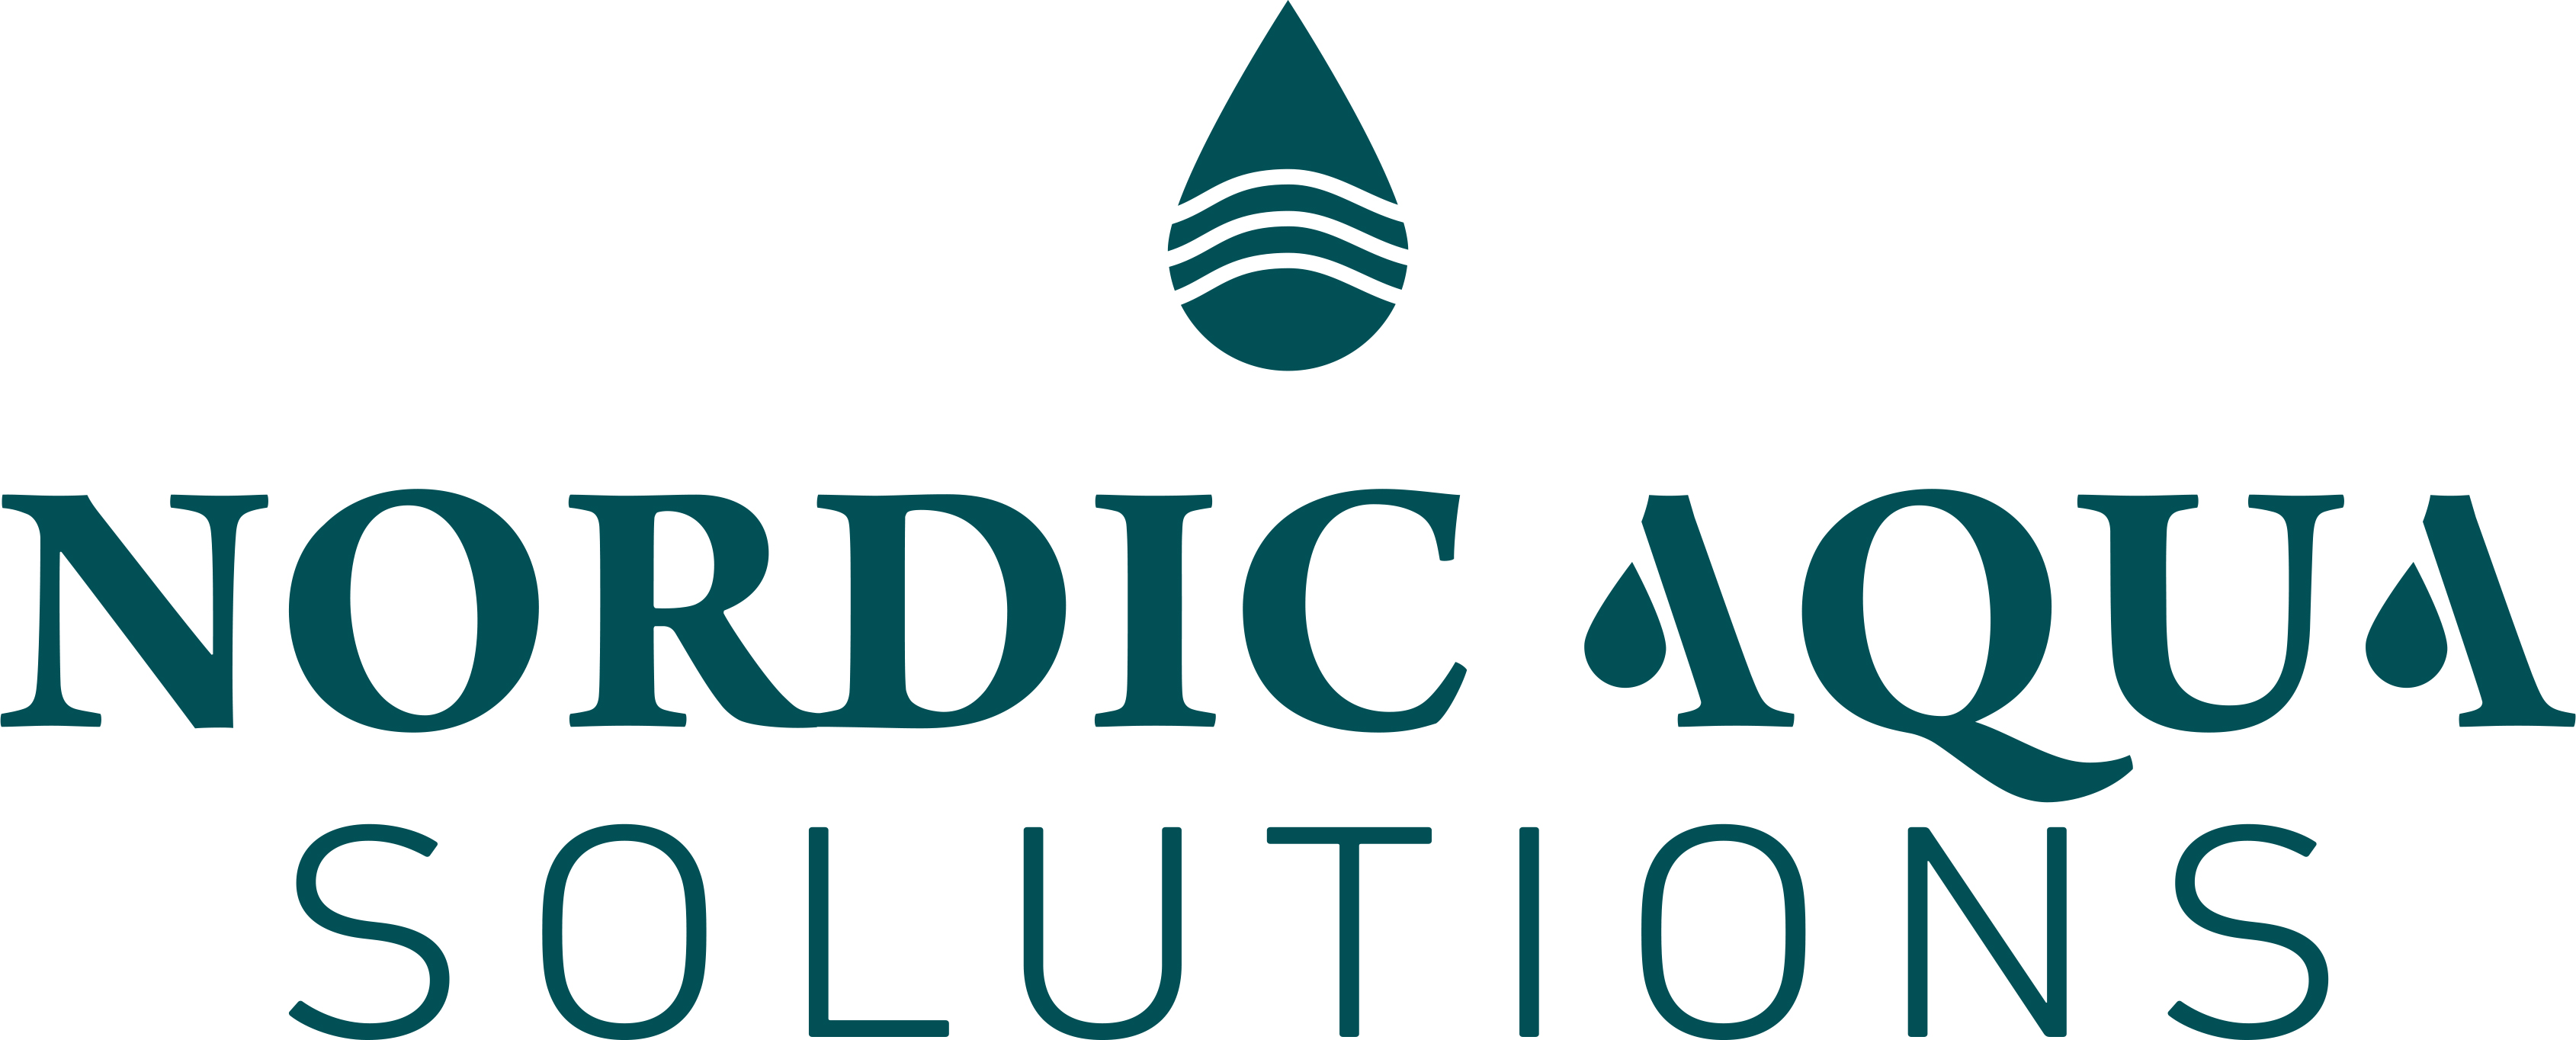 Nordicaquasolutions.com